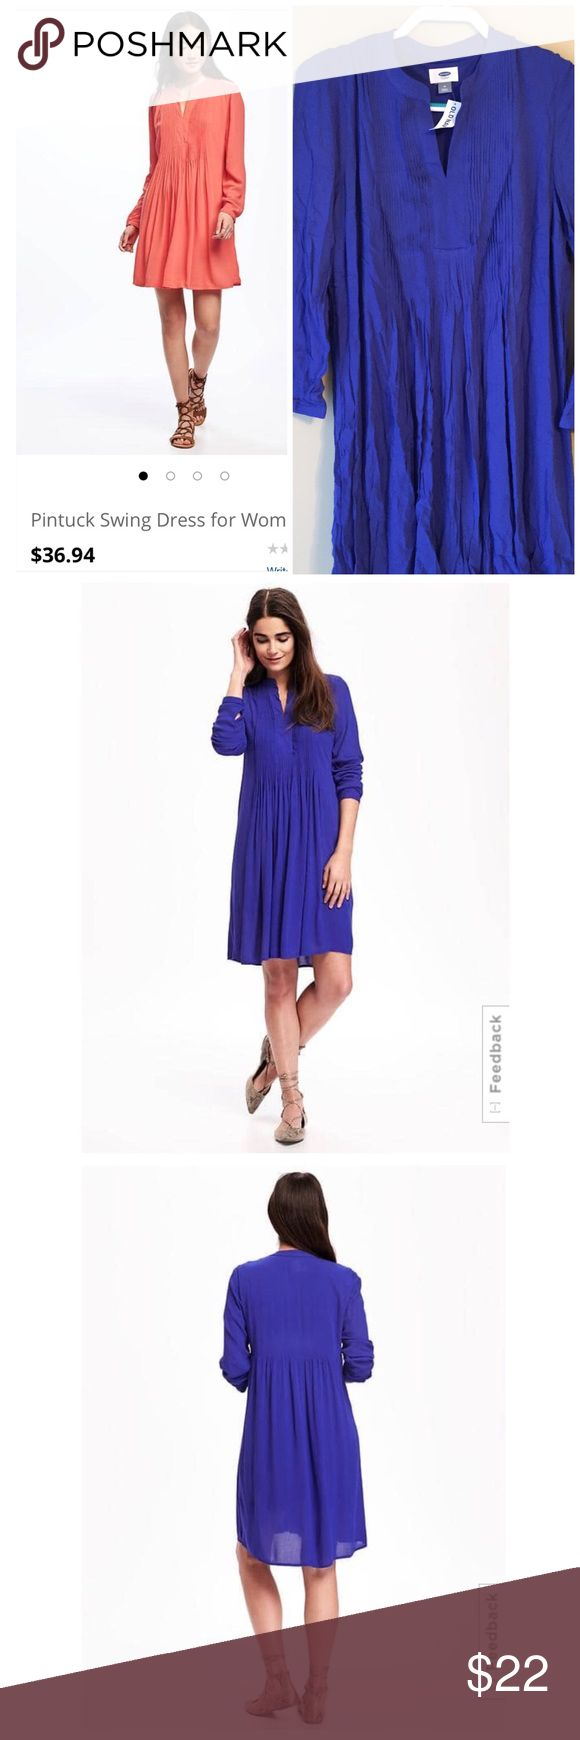 NWT 🔖 Old Navy Pintuck Swing Dress 👗 in Blue Ordered online. Still current on their Website. Retail $36.94. Size Medium. A little big on me. I am a size 6. This would fit a size 8 best. I am 5'6 and 132 lbs. I will ship it in the clear bag with barcode it came in. No Old Navy where I live to return it to. My lose...your gain. Length of dress: 32 inches long. Smoke free home. Old Navy Dresses Midi